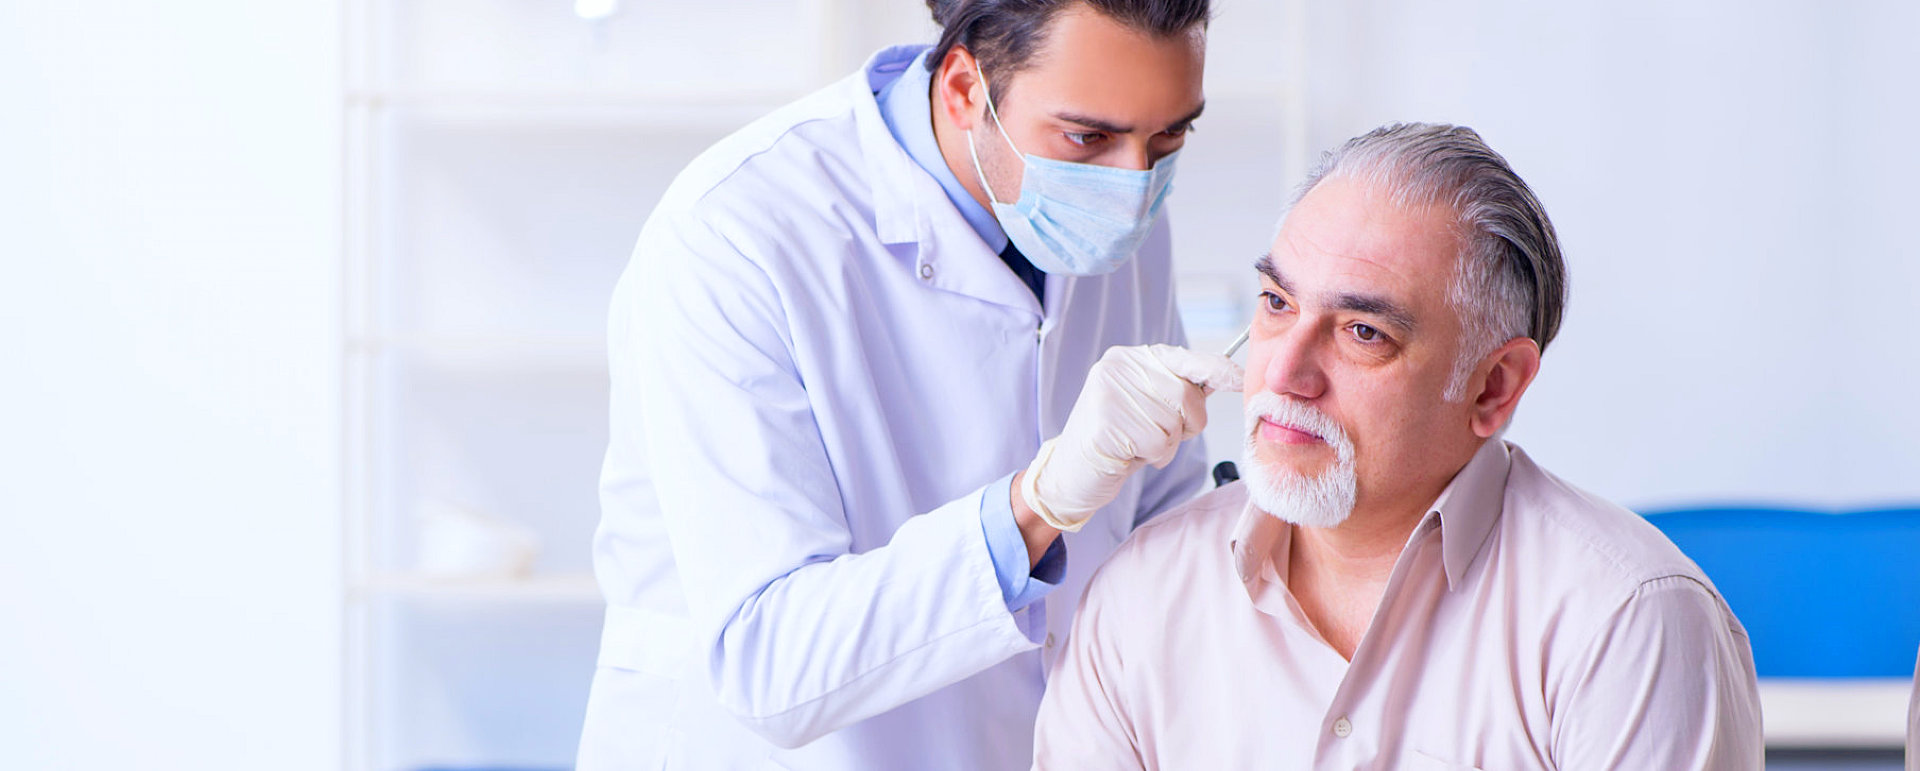 male physician checking pateint's hearing